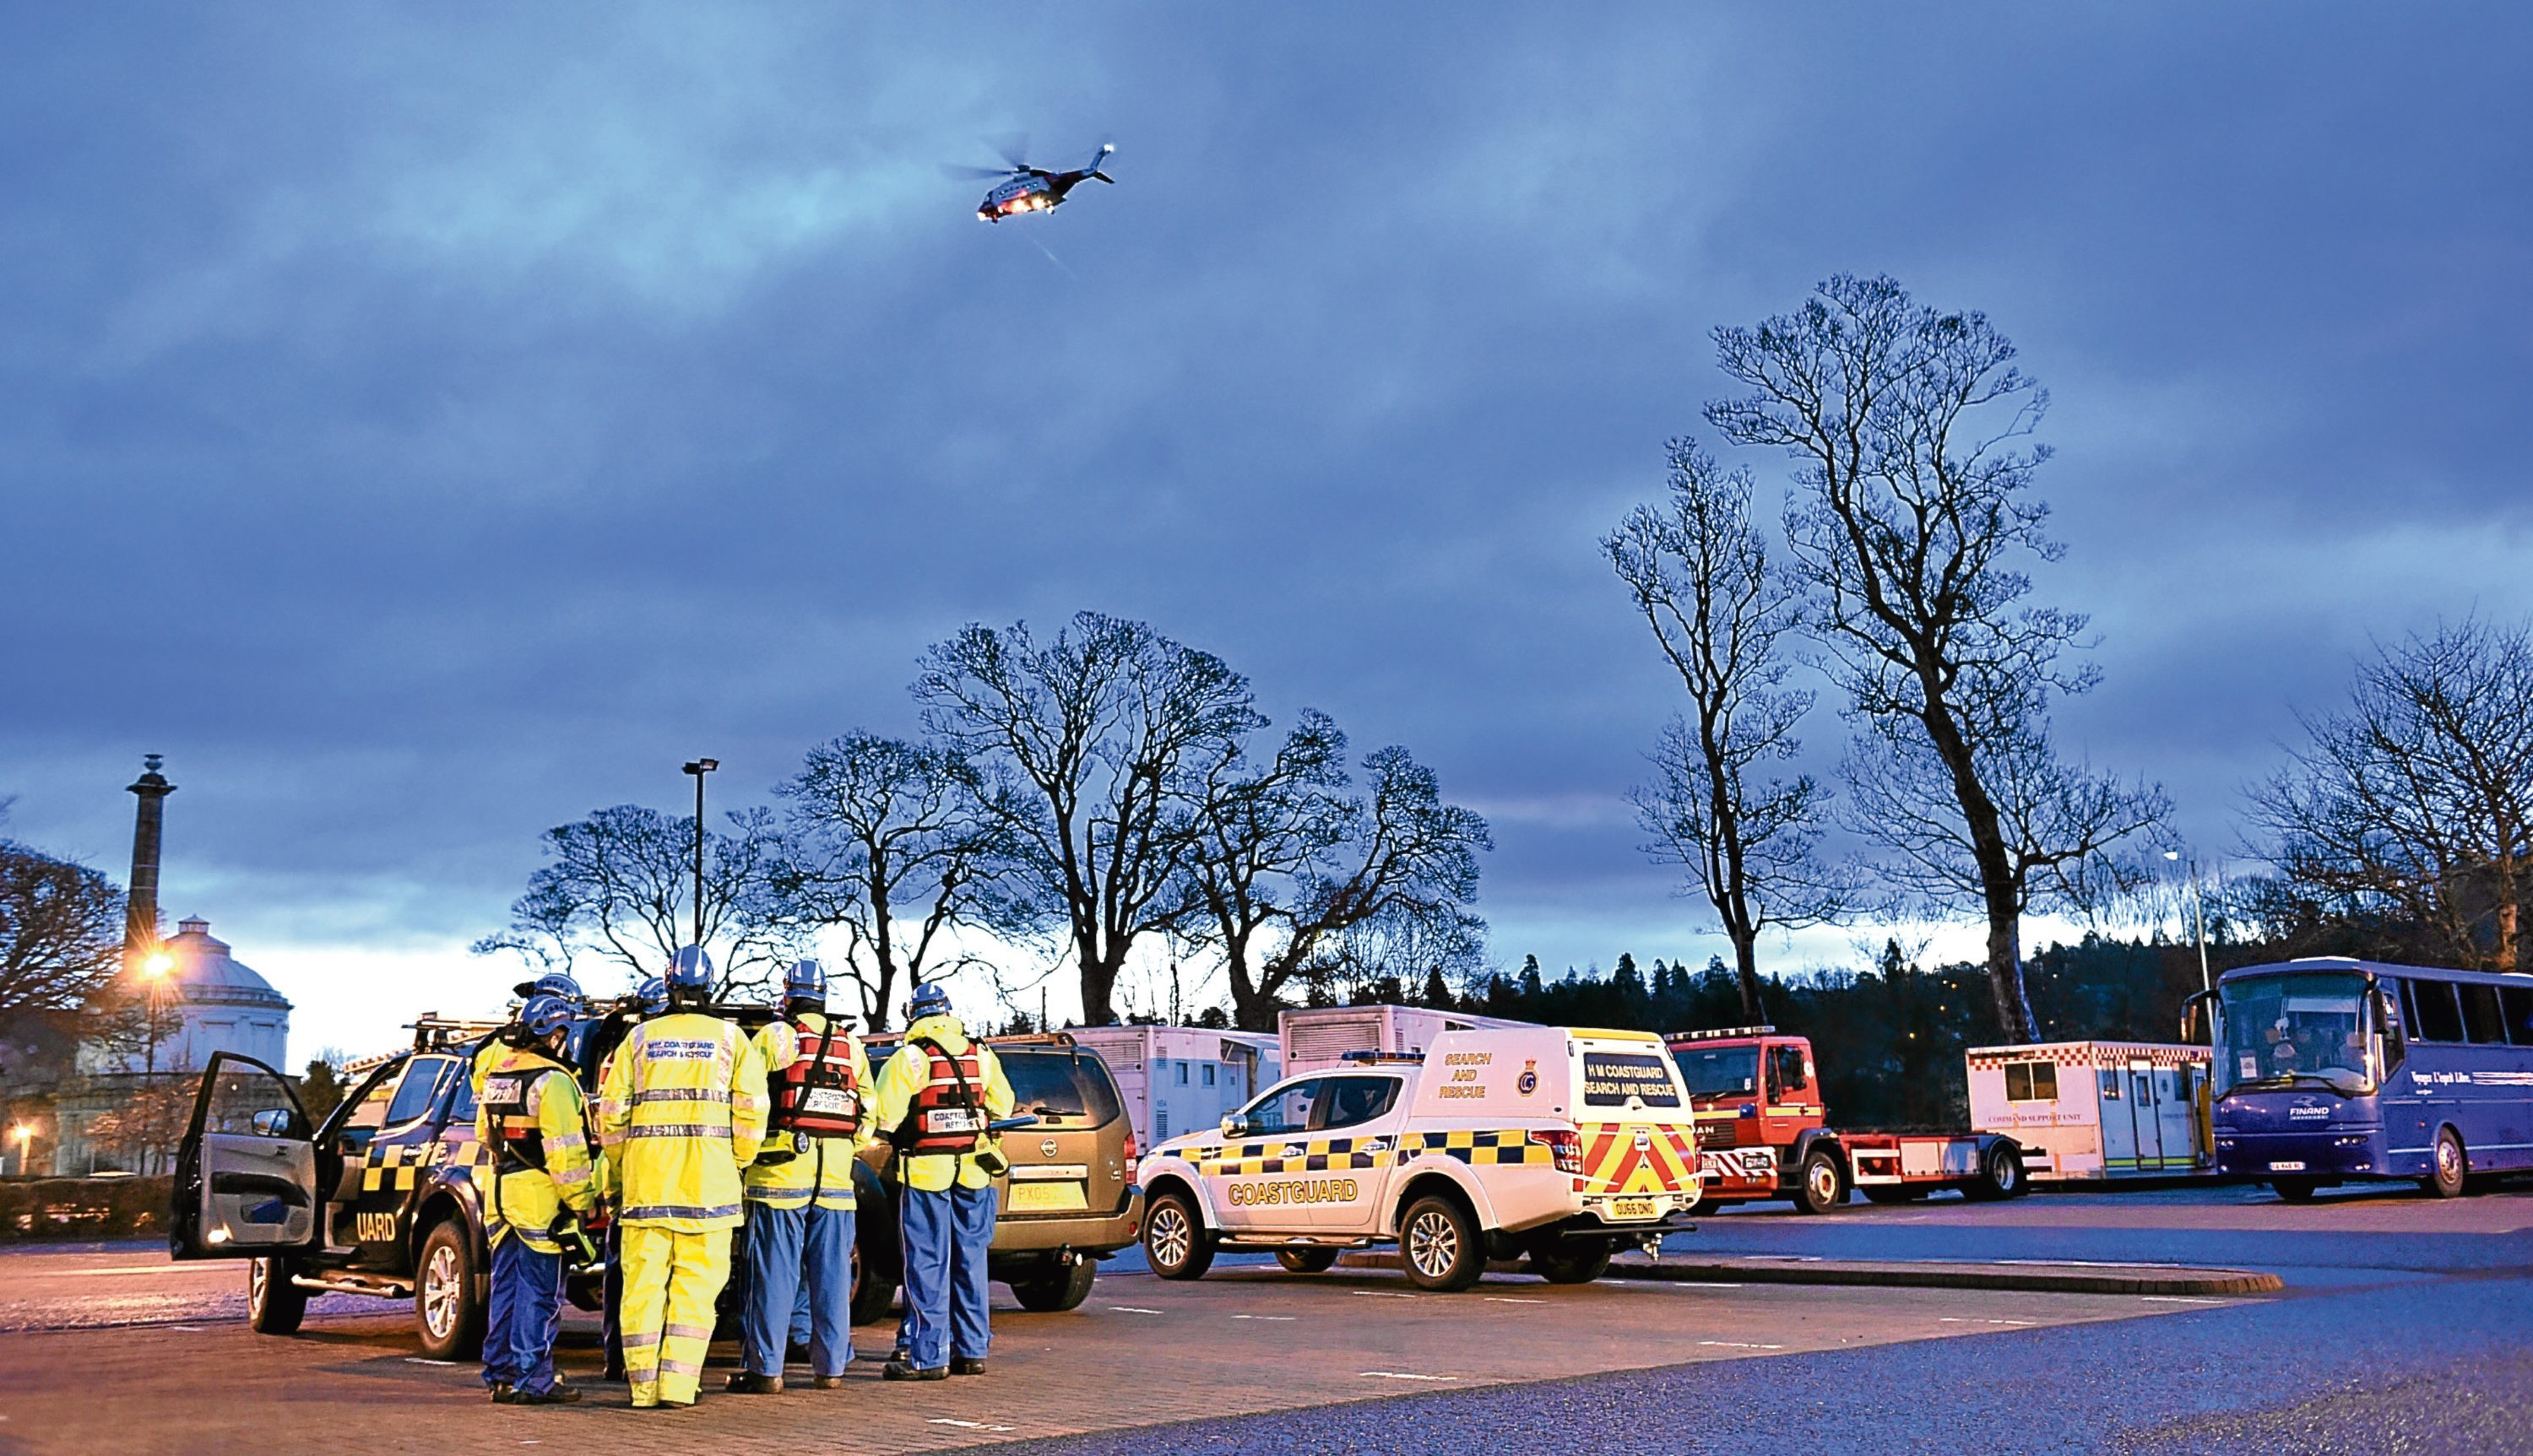 Emergency services near the Tay during the search operation